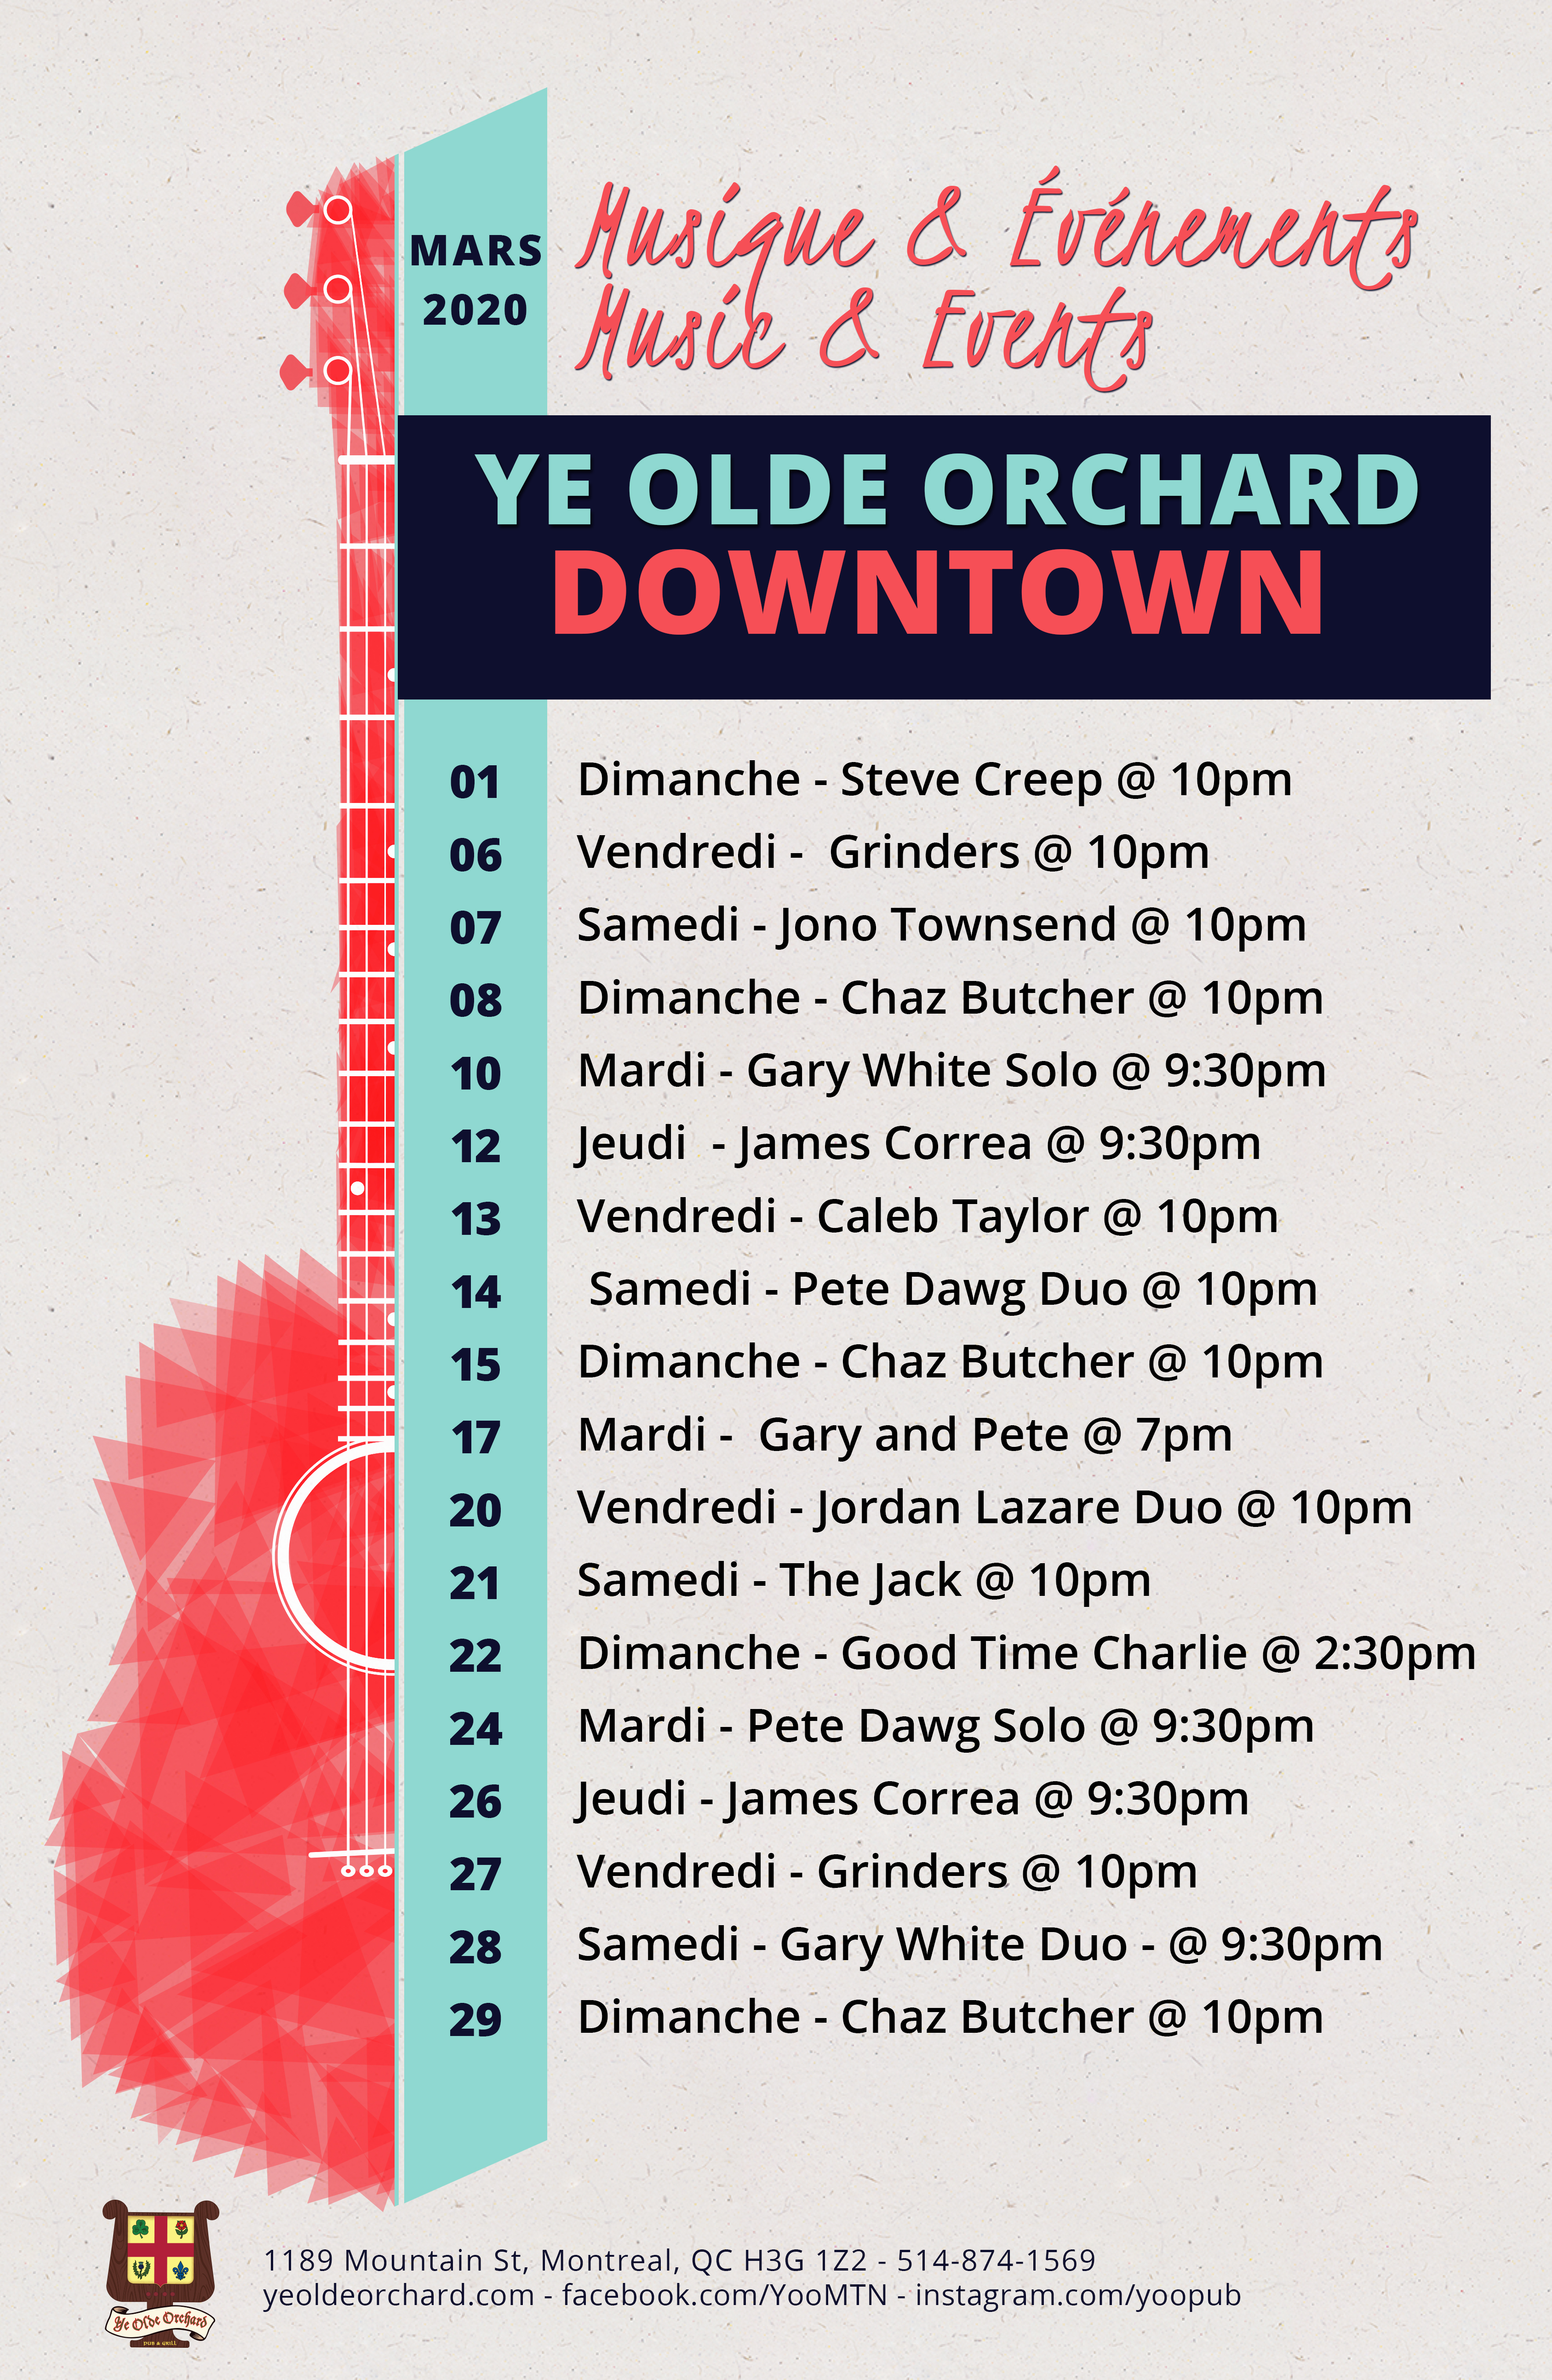 ye-olde-orchard-pub-music-and-events-calendar-mountain-TRY